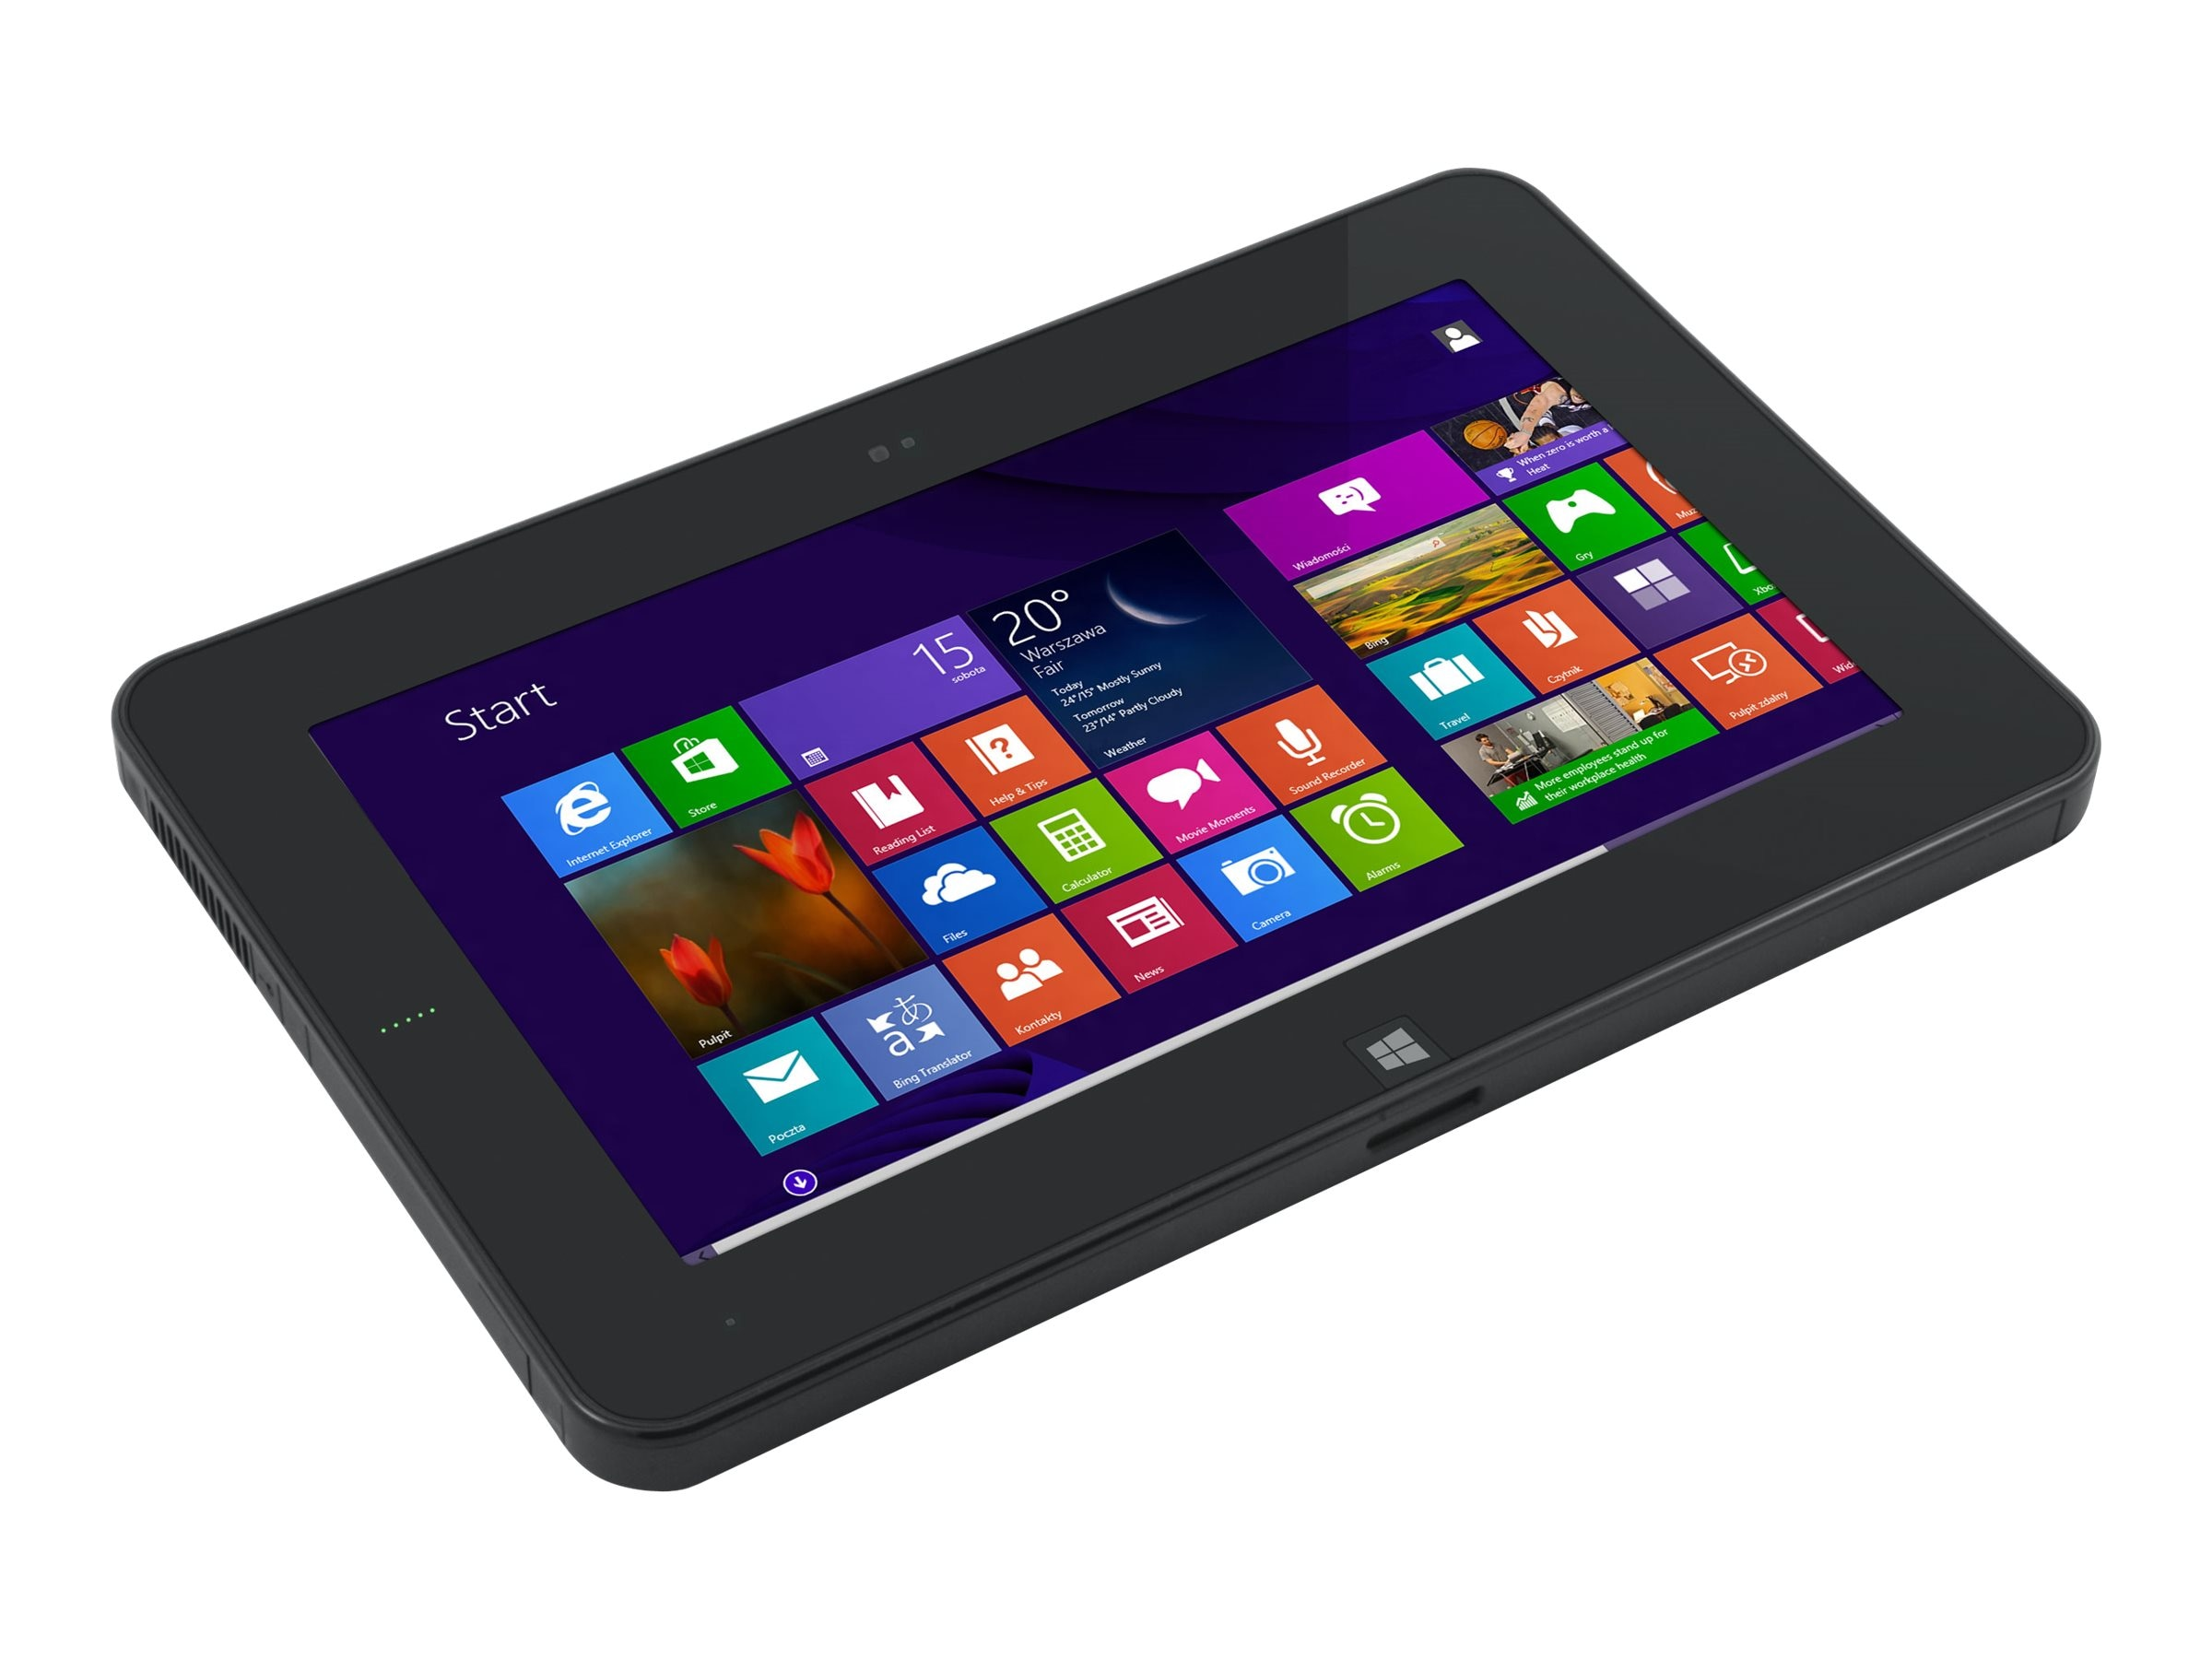 Motion CL920 Tablet PC 2.66GHz Touch w GG, CLK3A4A2A2A2A2, 17882986, Tablets